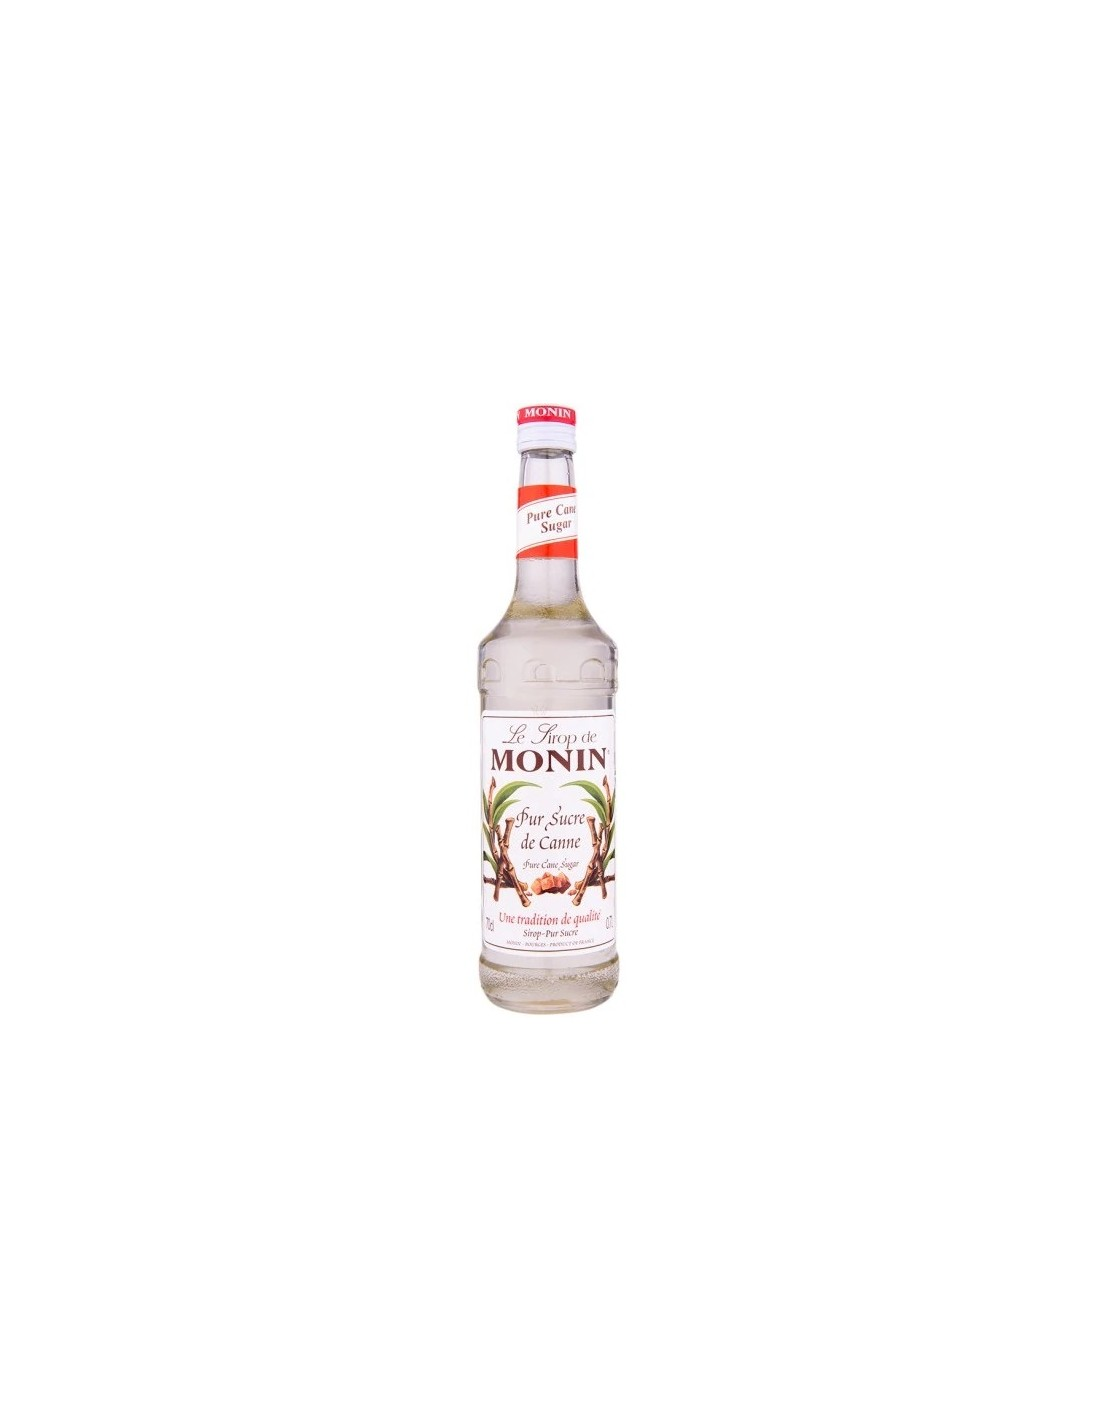 Sirop cocktail Monin Pur Sucre De Cannes, 0.7L, Franta